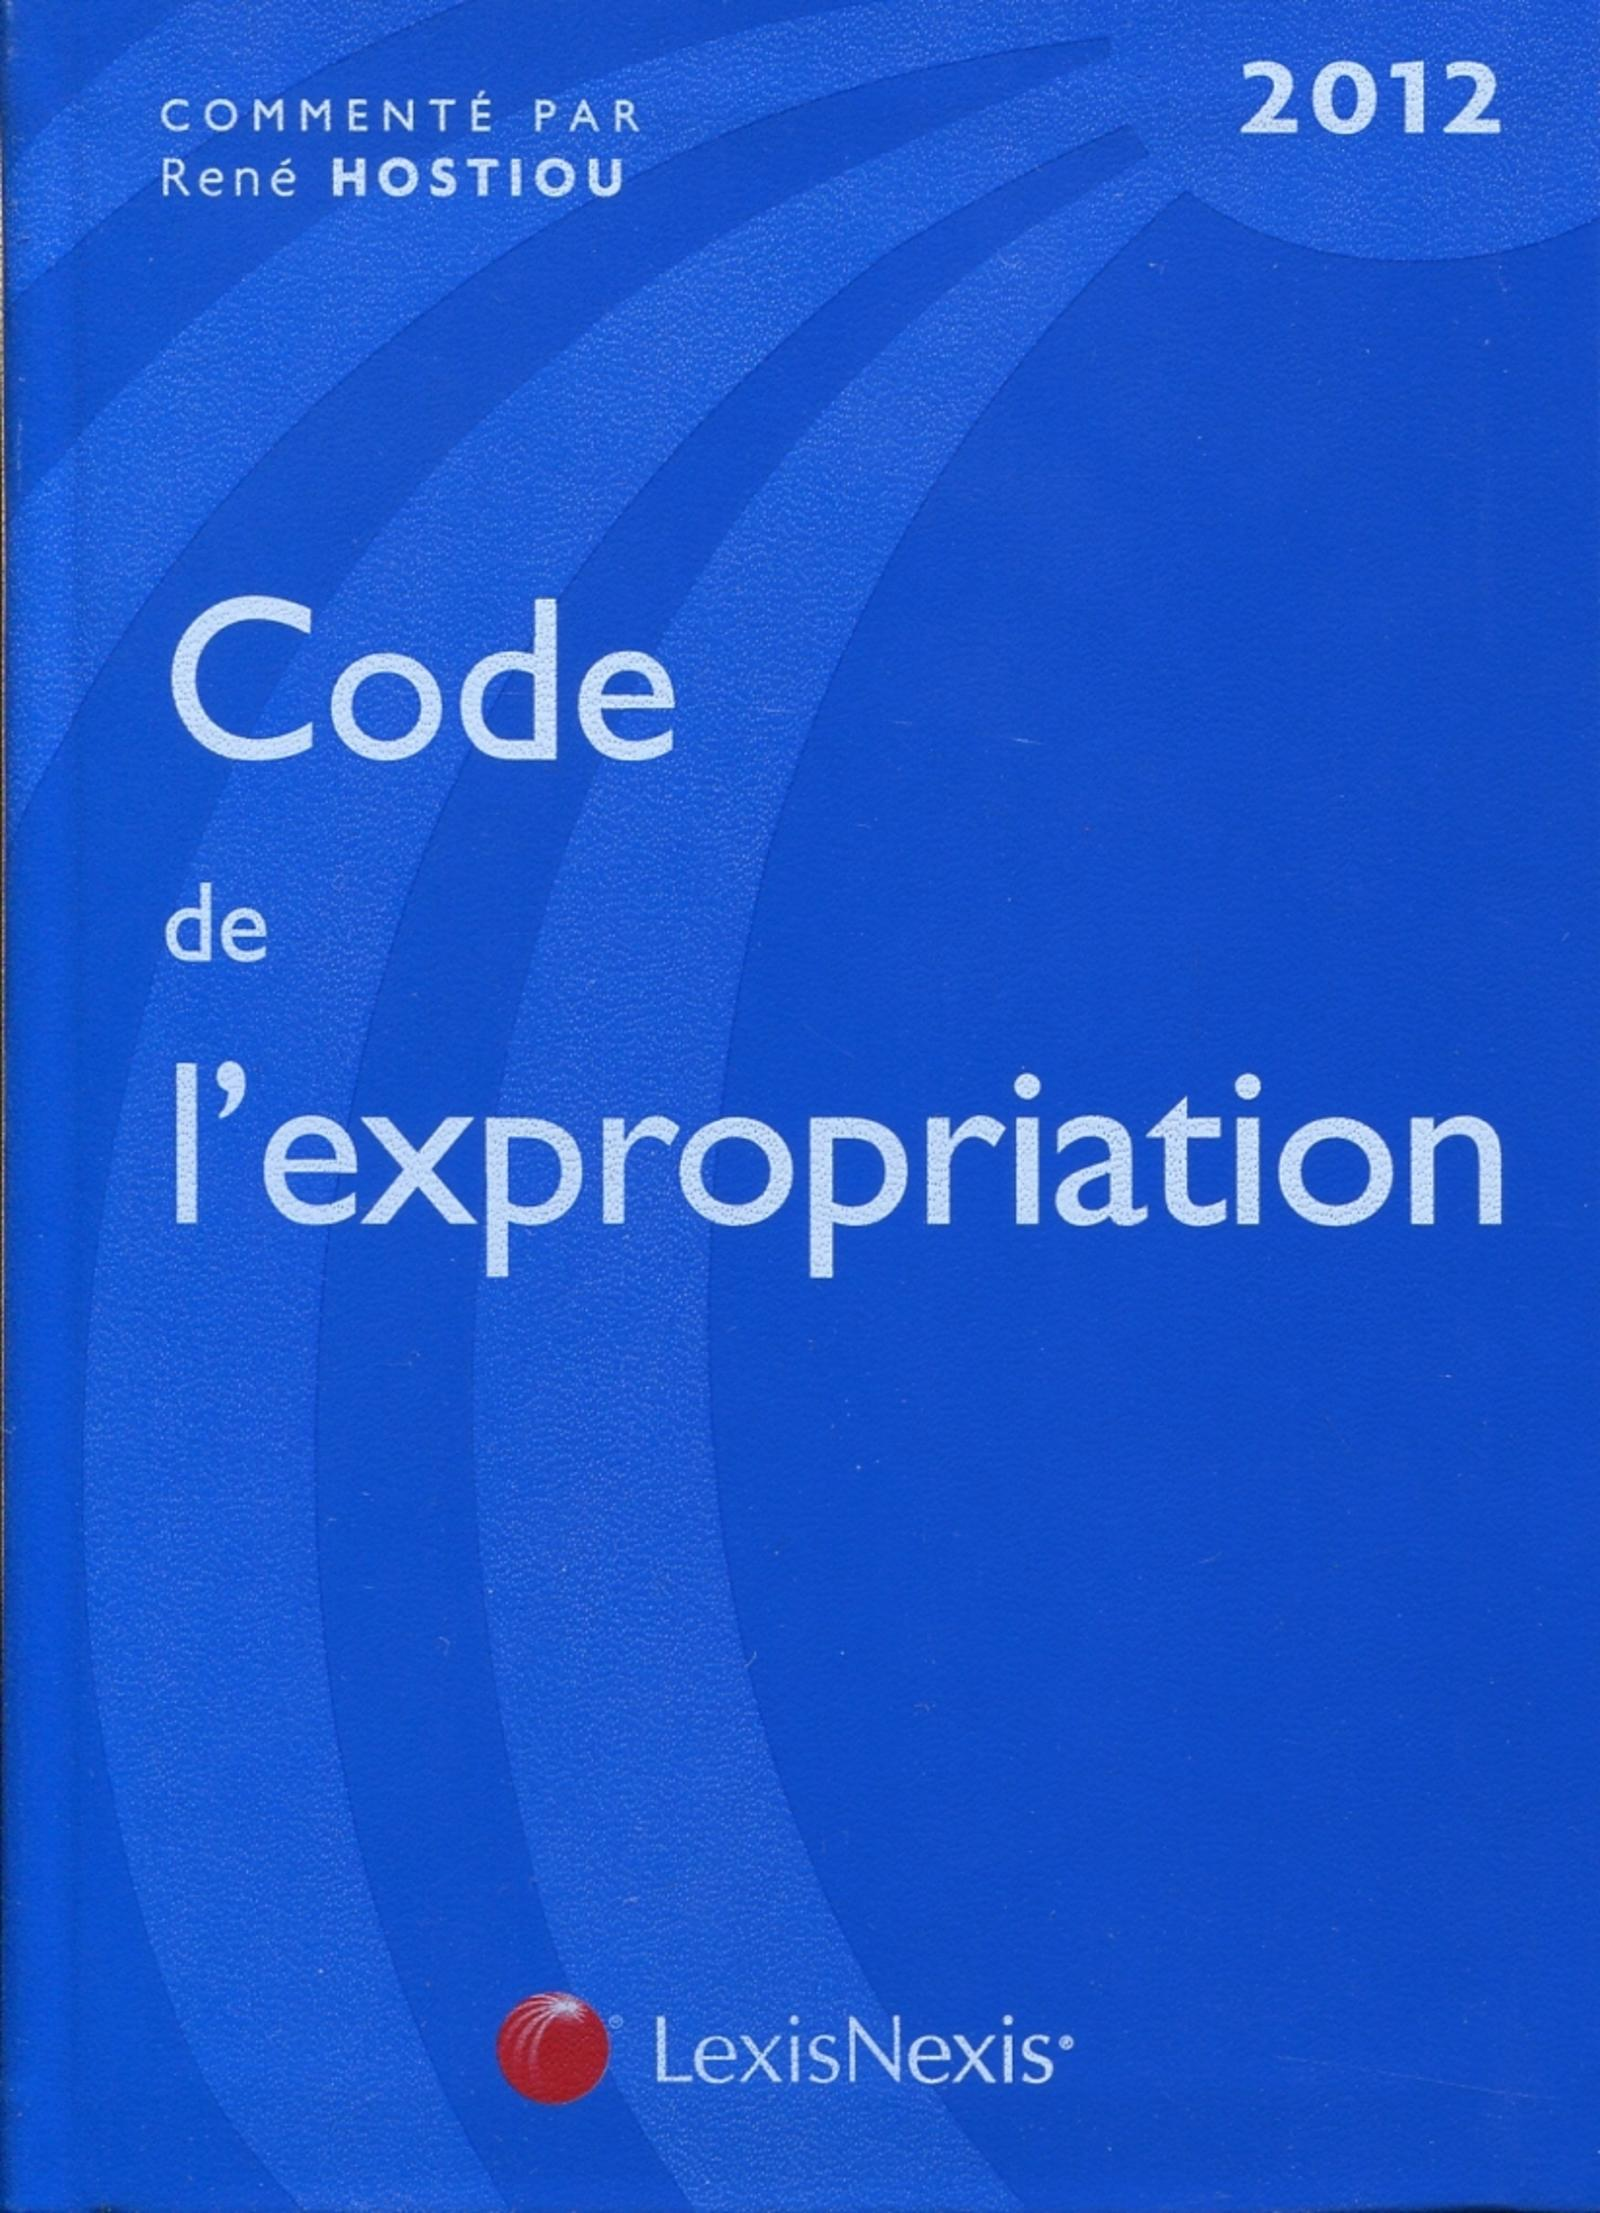 CODE DE L'EXPROPRIATION 2012